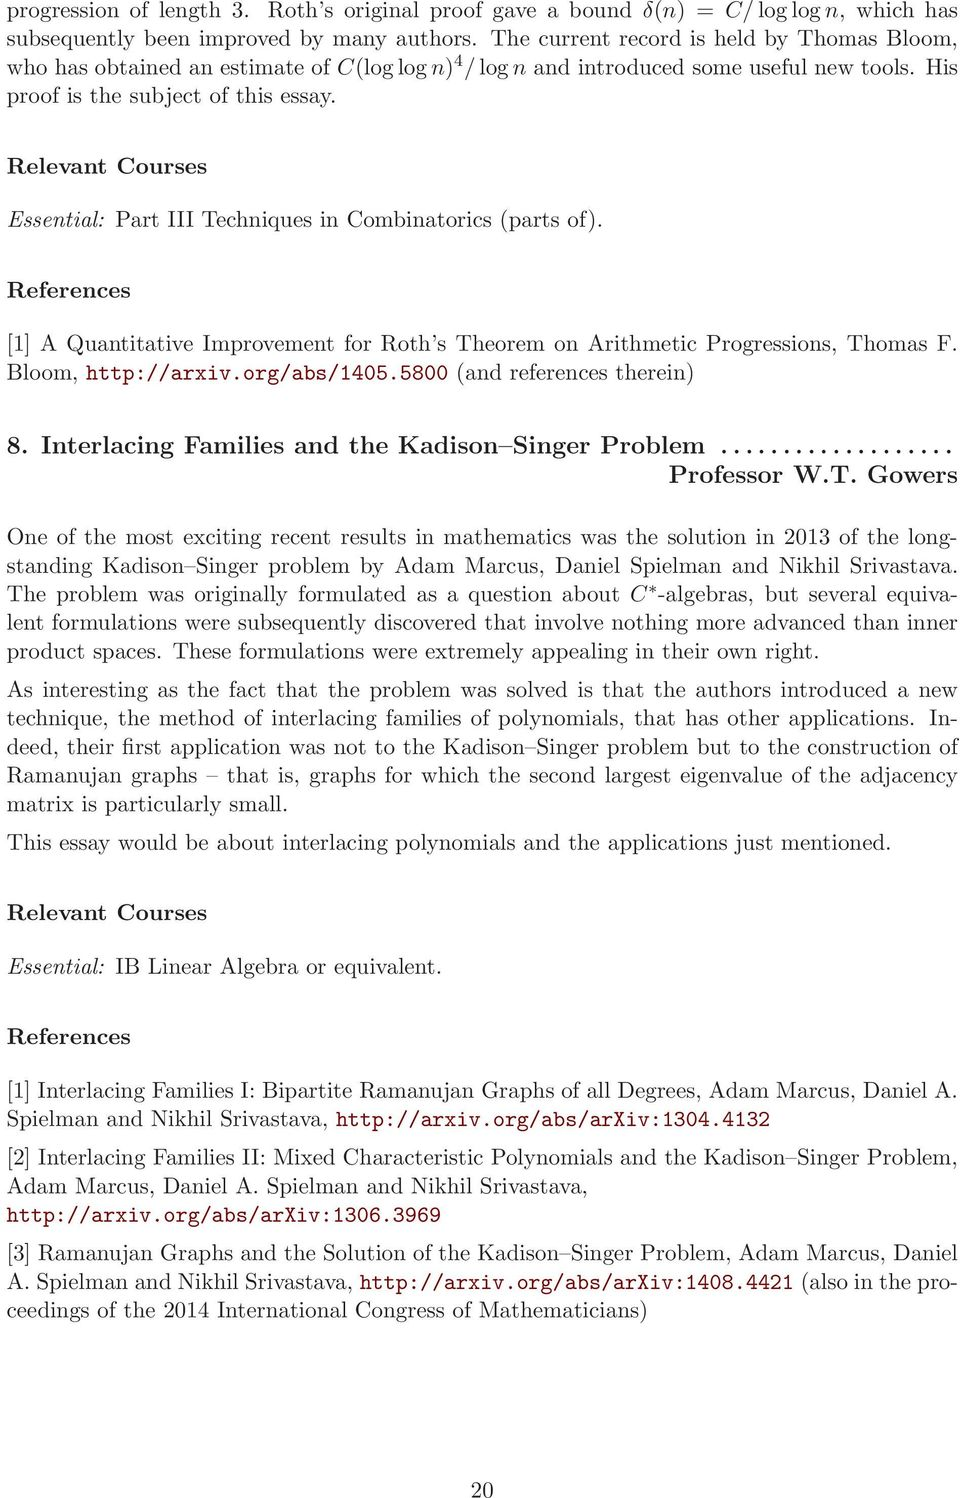 Essential: Part III Techniques in Combinatorics (parts of). [1] A Quantitative Improvement for Roth s Theorem on Arithmetic Progressions, Thomas F. Bloom, http://arxiv.org/abs/1405.